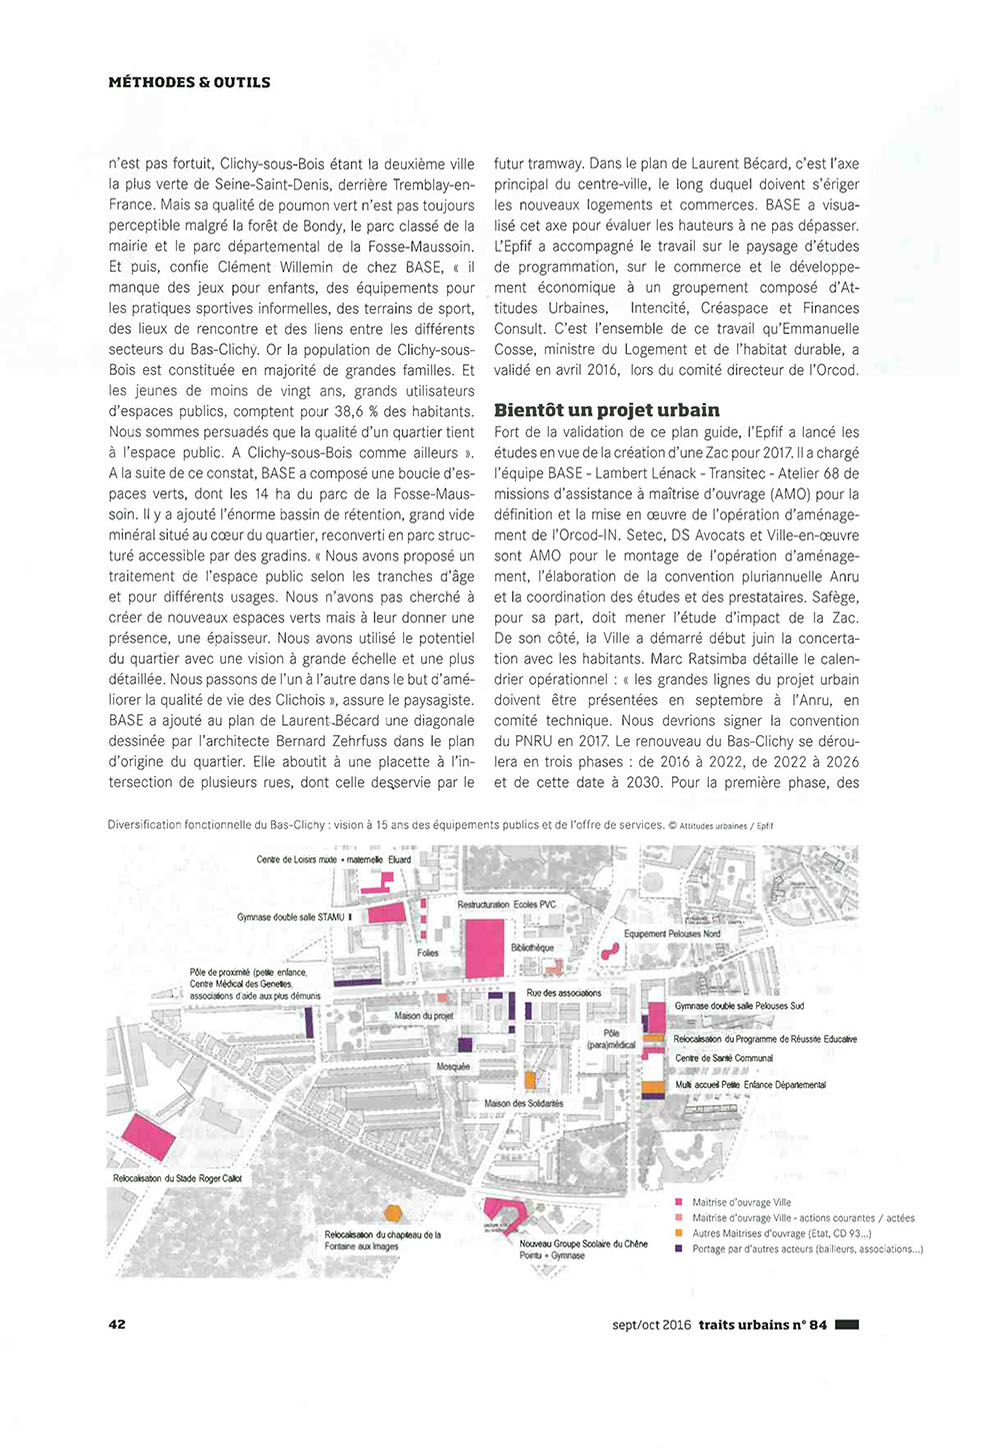 traits-urbains-sept-oct-2016-p42.jpg